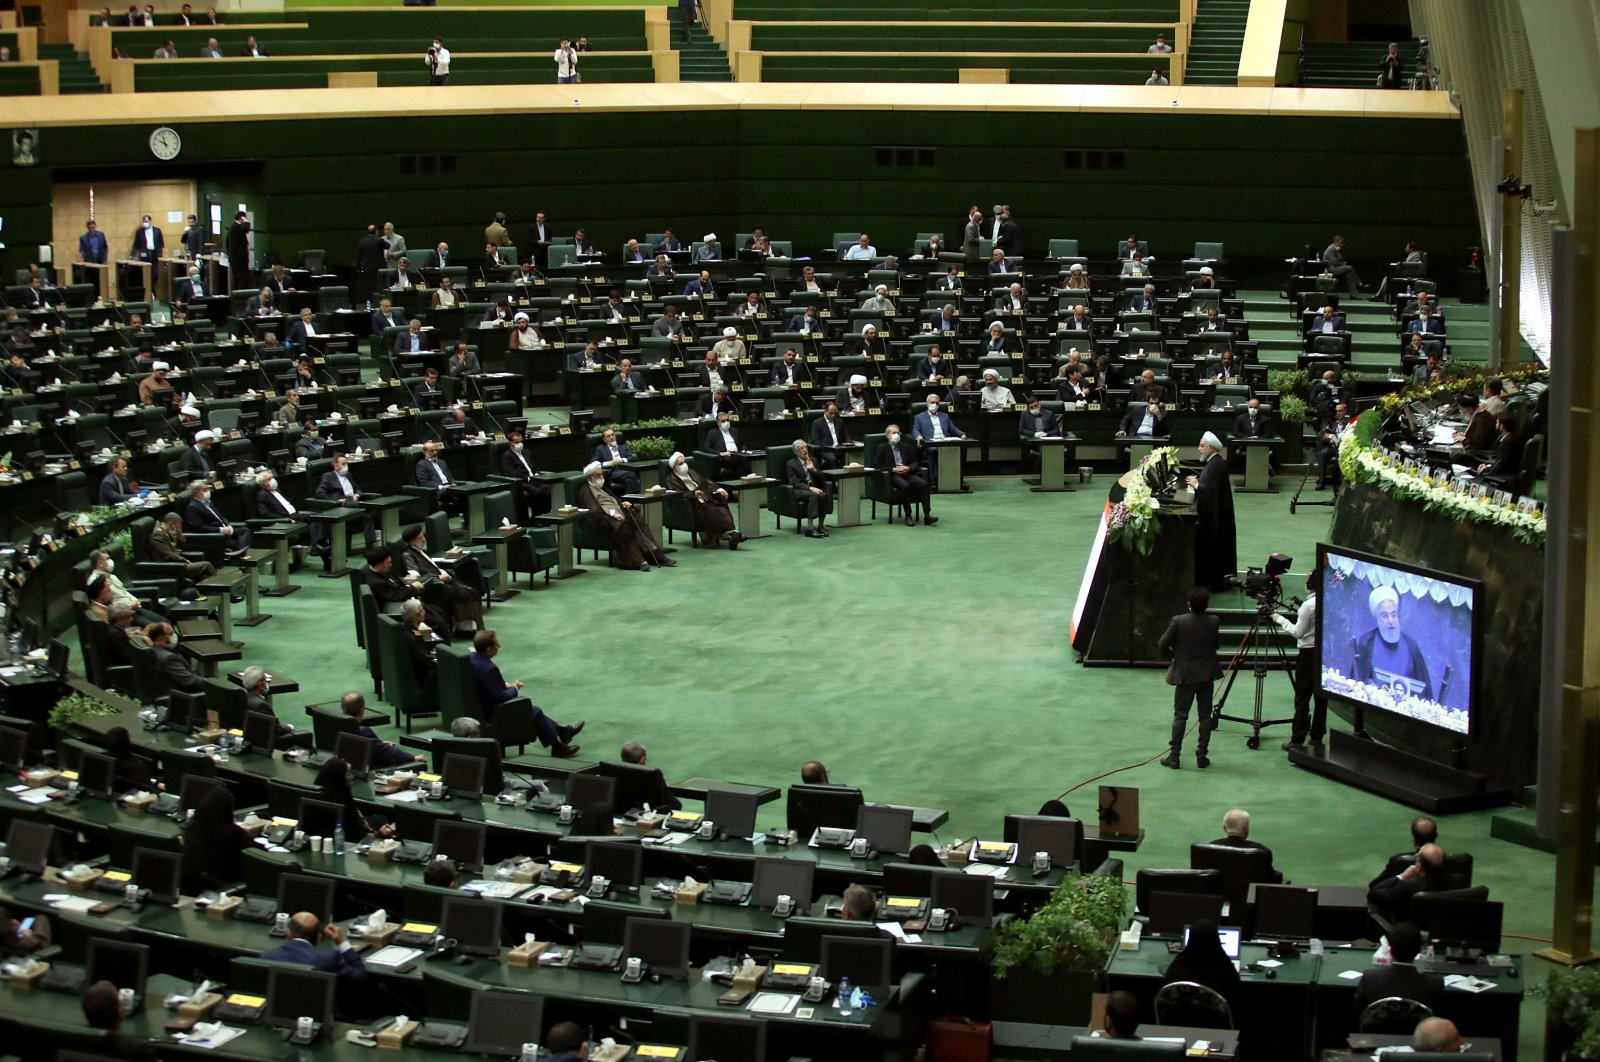 Iranian President Hassan Rouhani speaks during the opening ceremony of Iran's 11th Parliament, as the spread of the coronavirus continues, Tehran, Iran, May 27, 2020. (Reuters Photo)